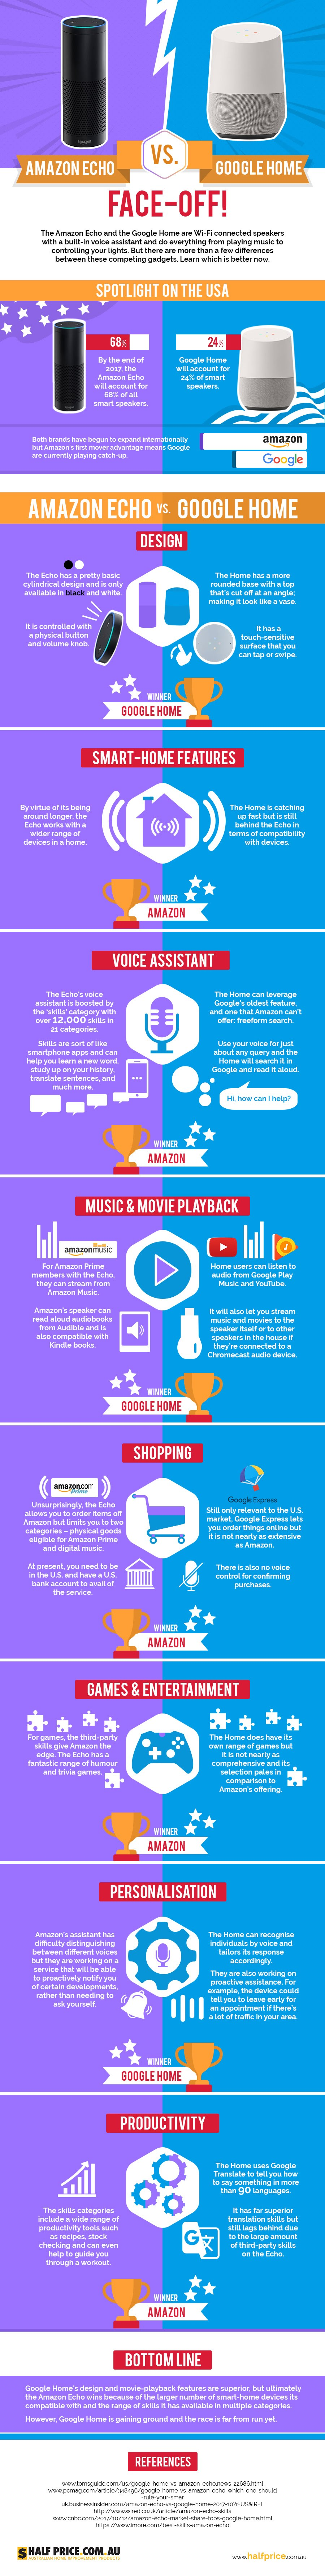 Amazon-Echo Vs Google-Home - #infographic